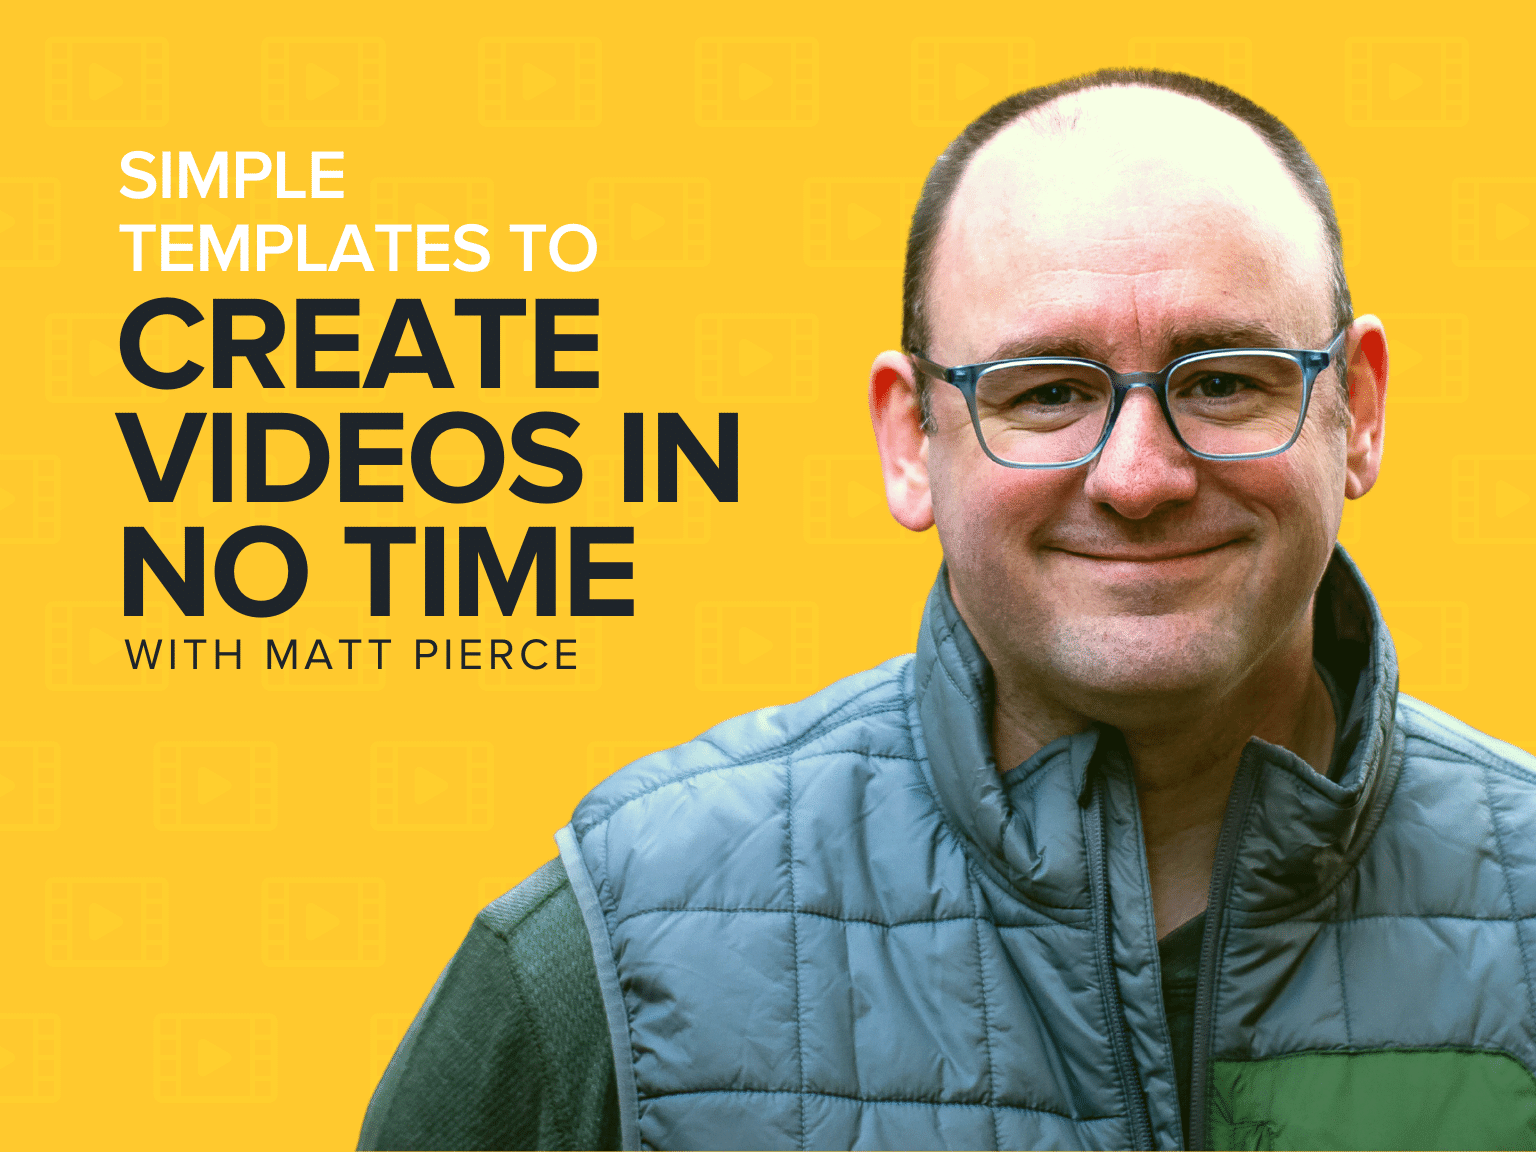 Simple Templates to Create Videos in No Time